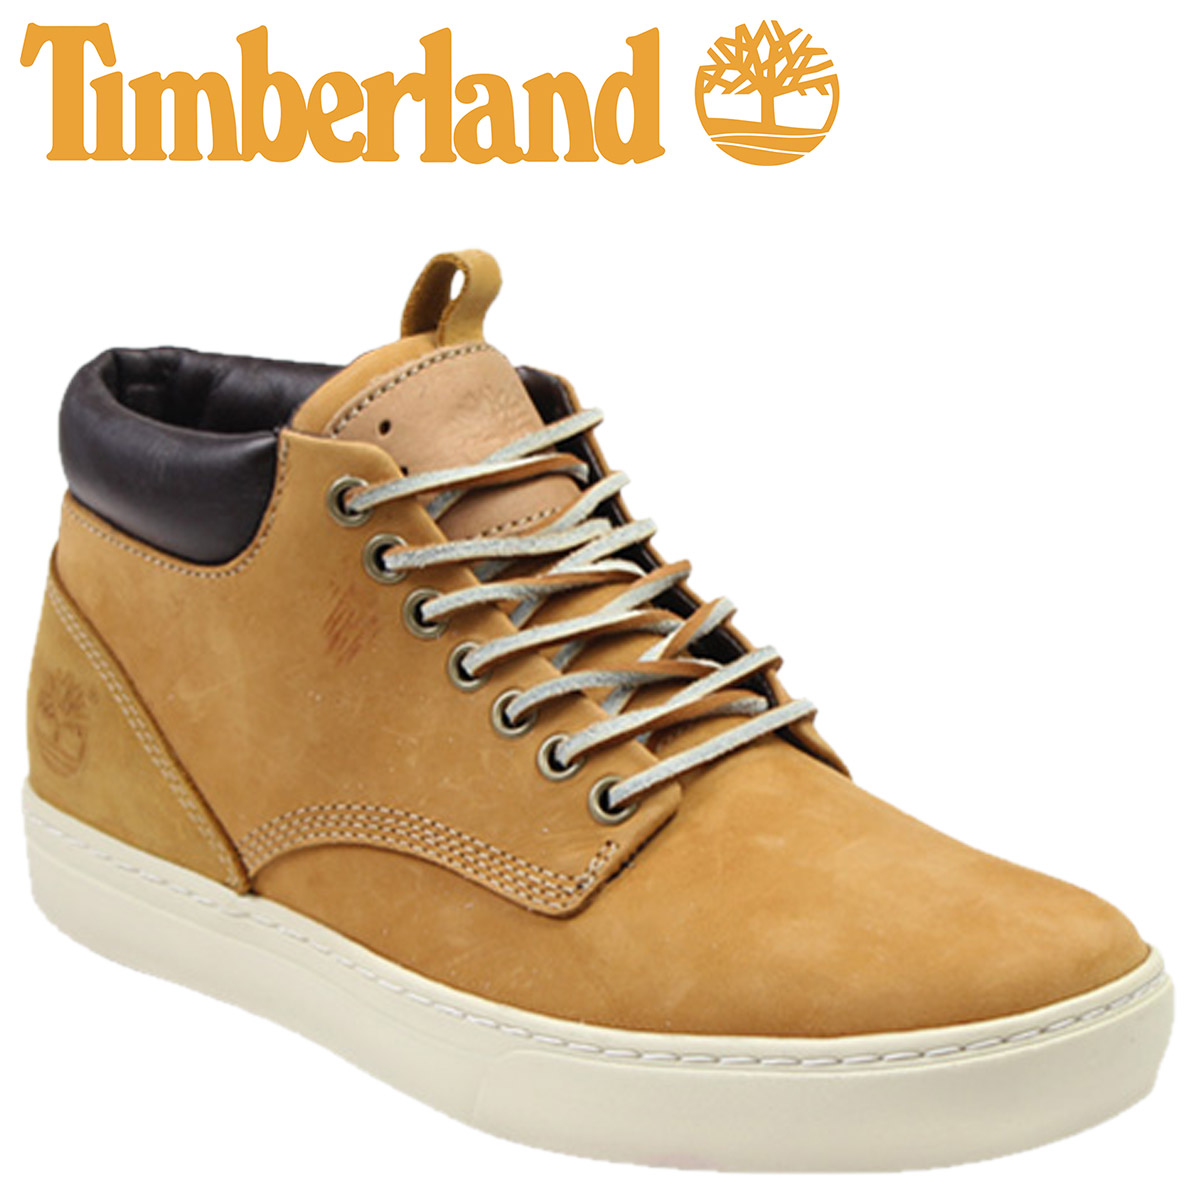 [SOLD OUT] Timberland Timberland Earthkeepers 2.0 cupsole chukka wheat EARTH KEEPERS 2.0 CUPSOLE CHUKKA nubuck boot 5636R BOOT mens